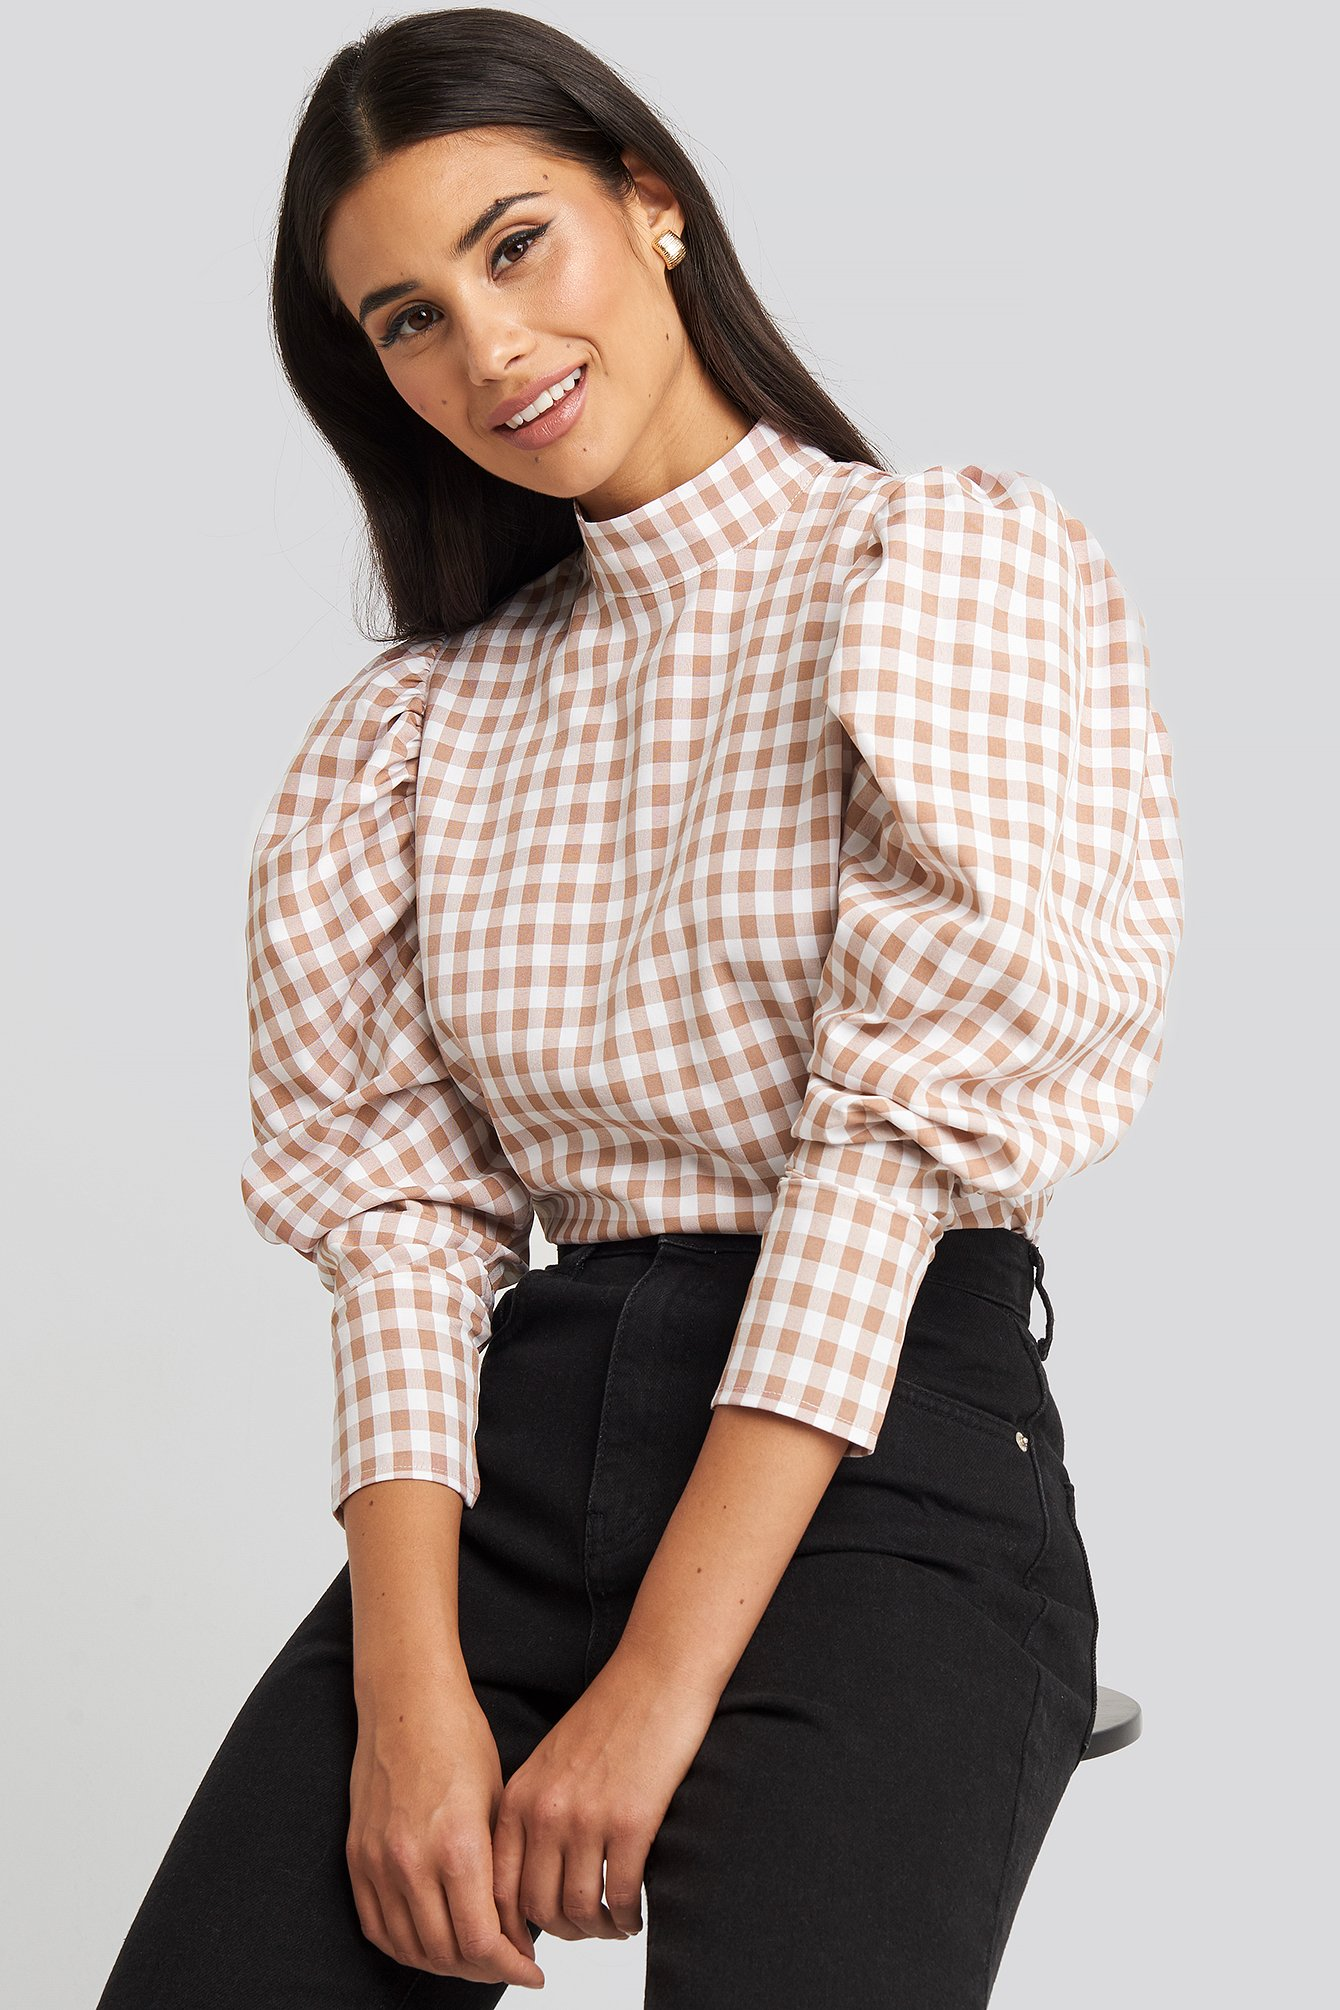 NA-KD Boho High Collar Checked Blouse - Pink,White,Multicolor